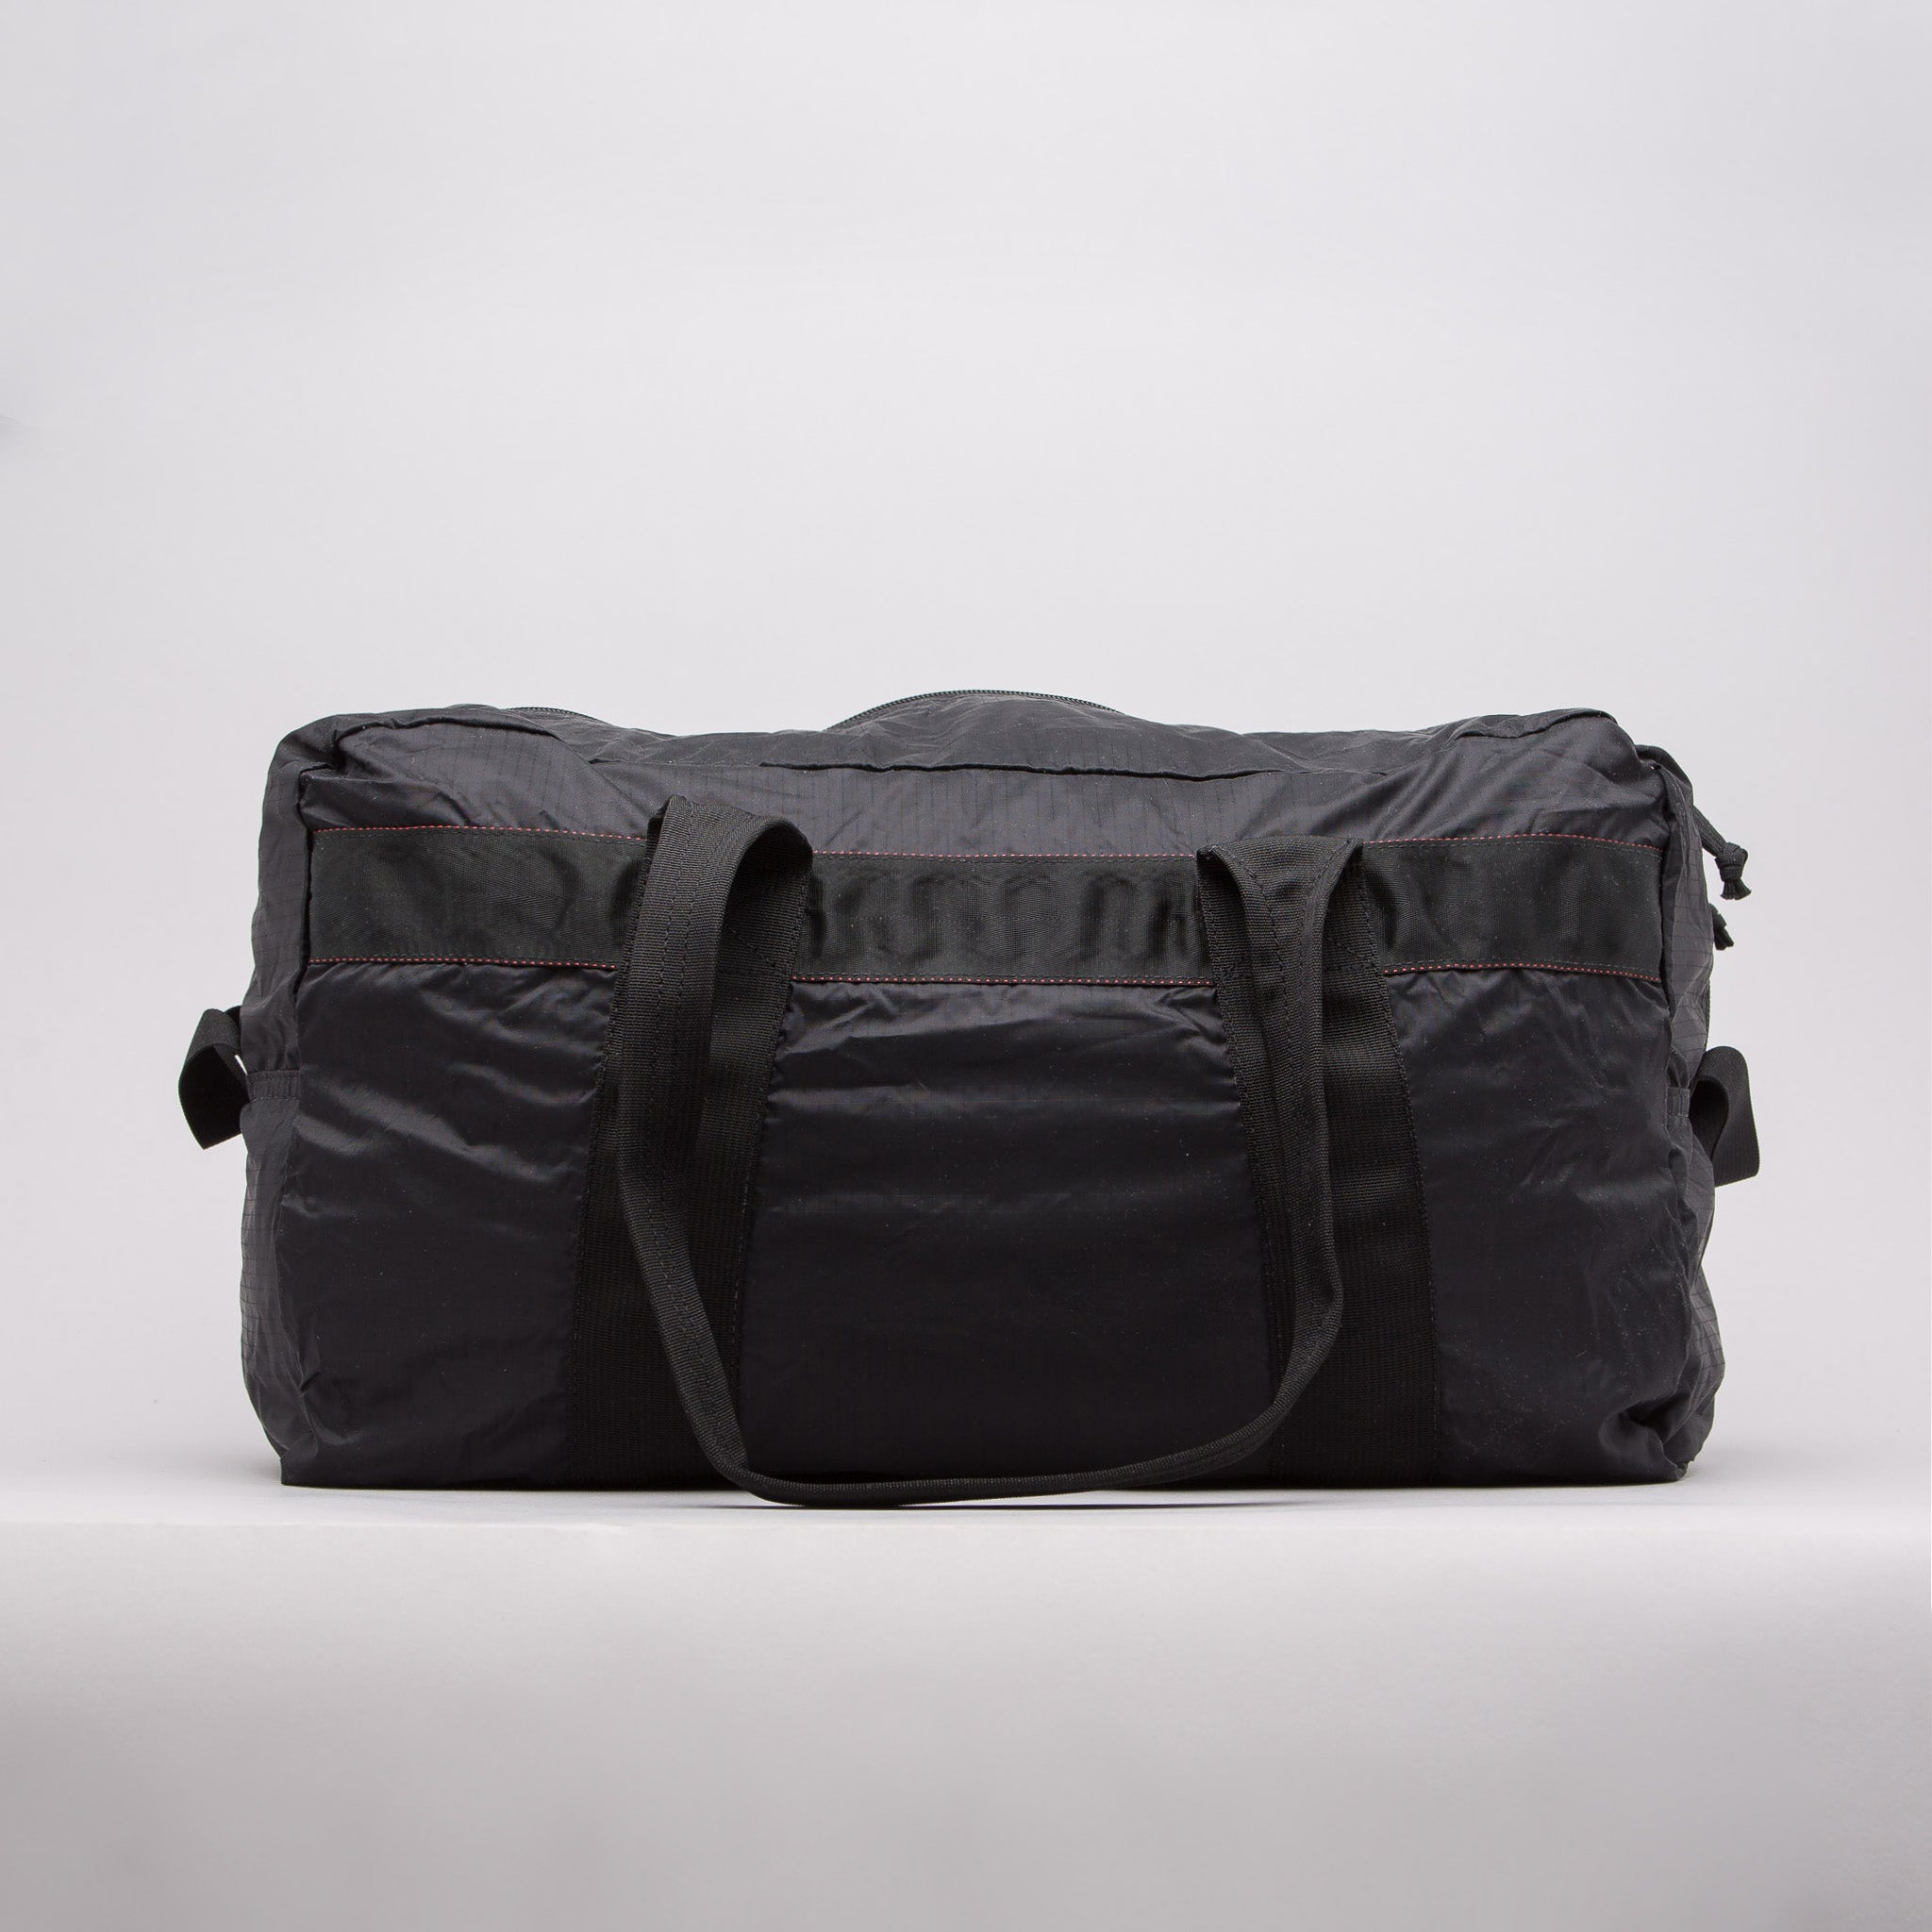 x Briefing 2-in-1 Duffle